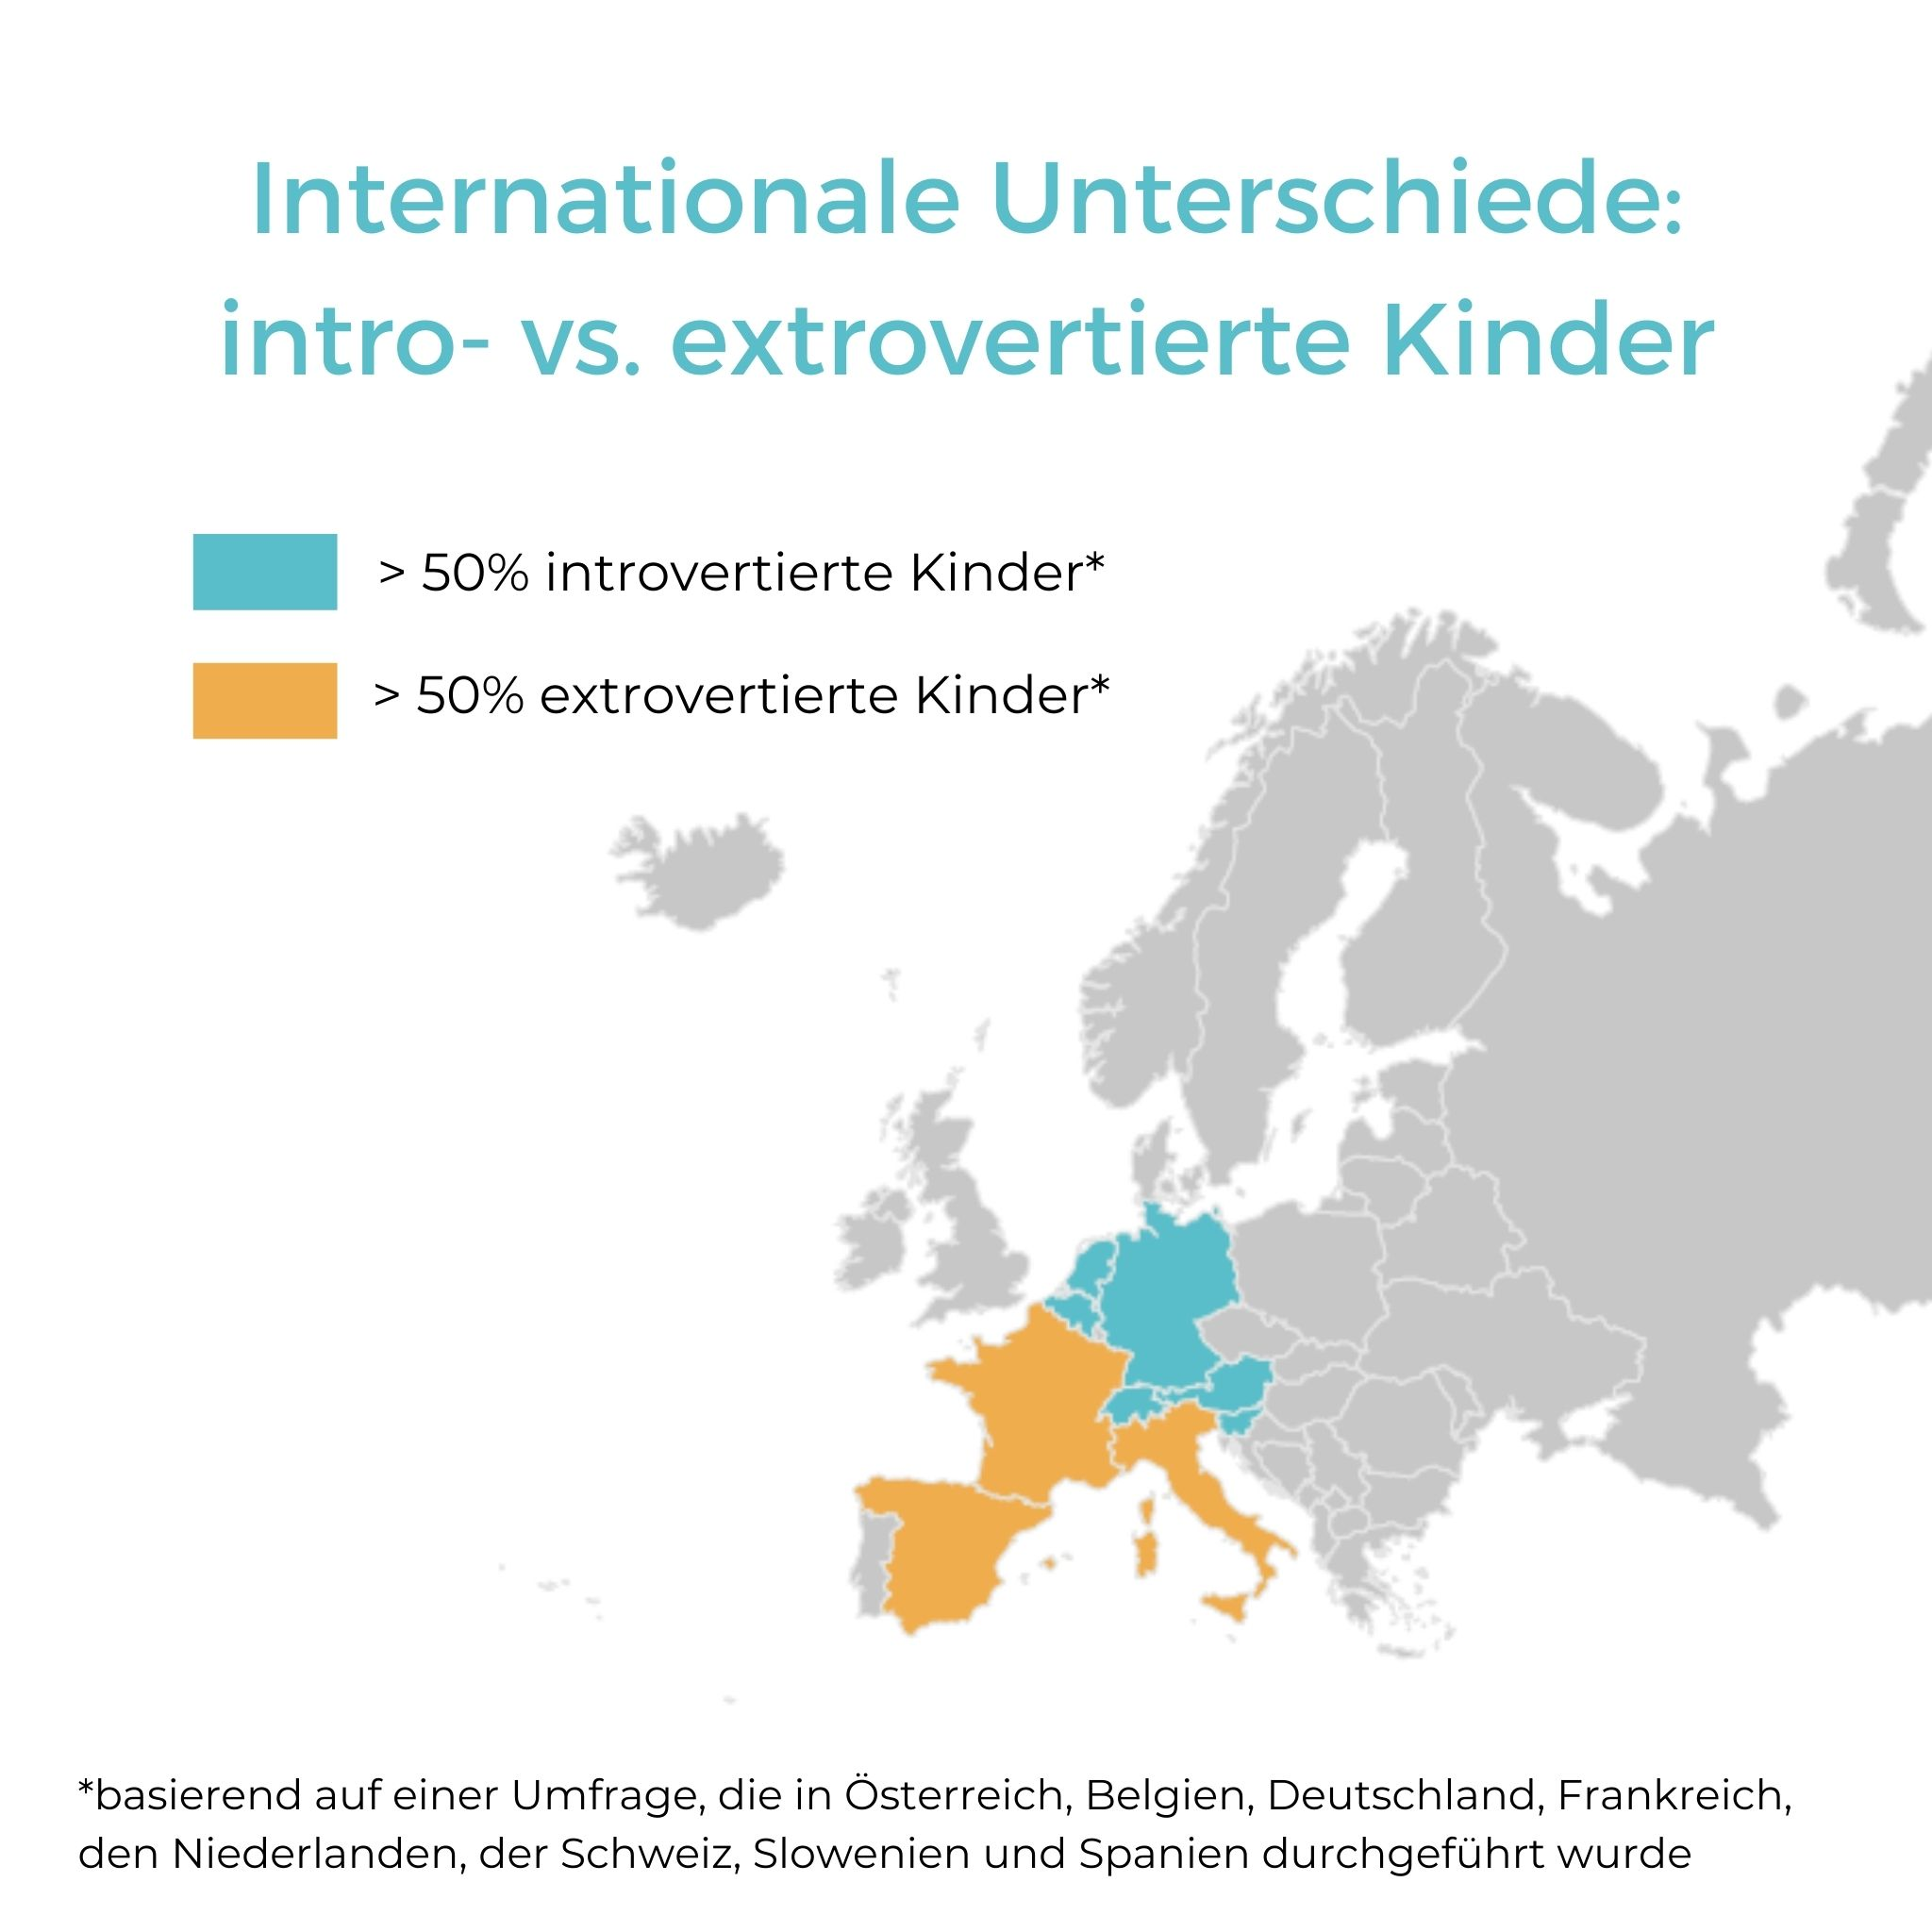 Introvertierte und extrovertierte Kinder in Europa